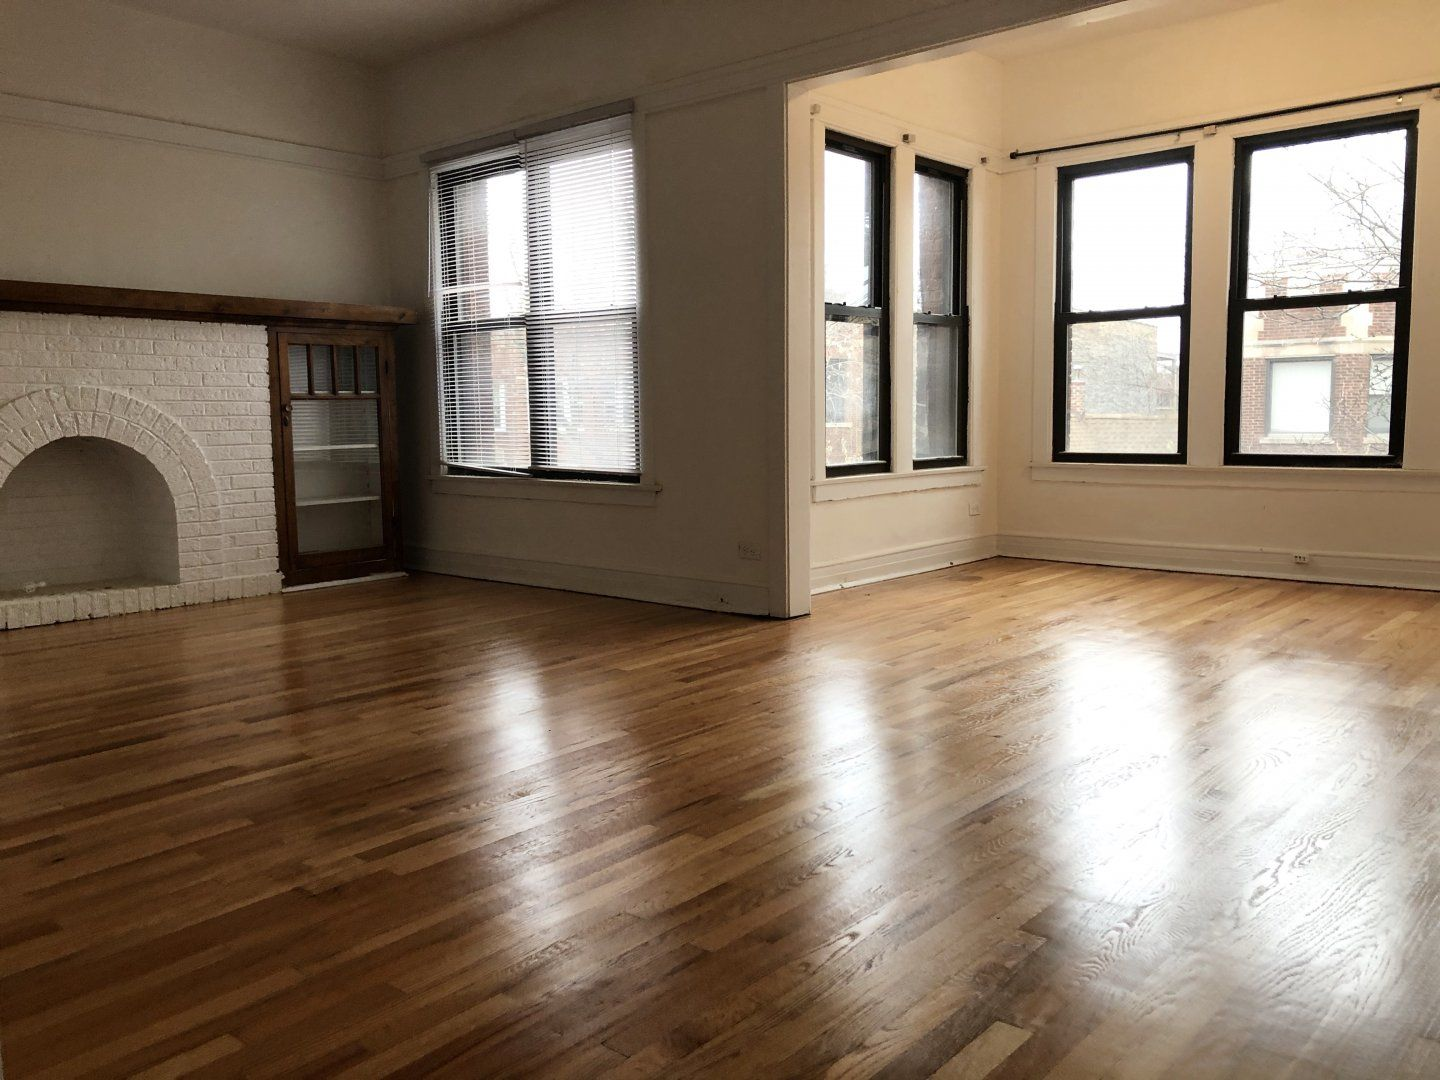 Andersonville Apartments For Rent 2 Bedroom, 1 Bathroom